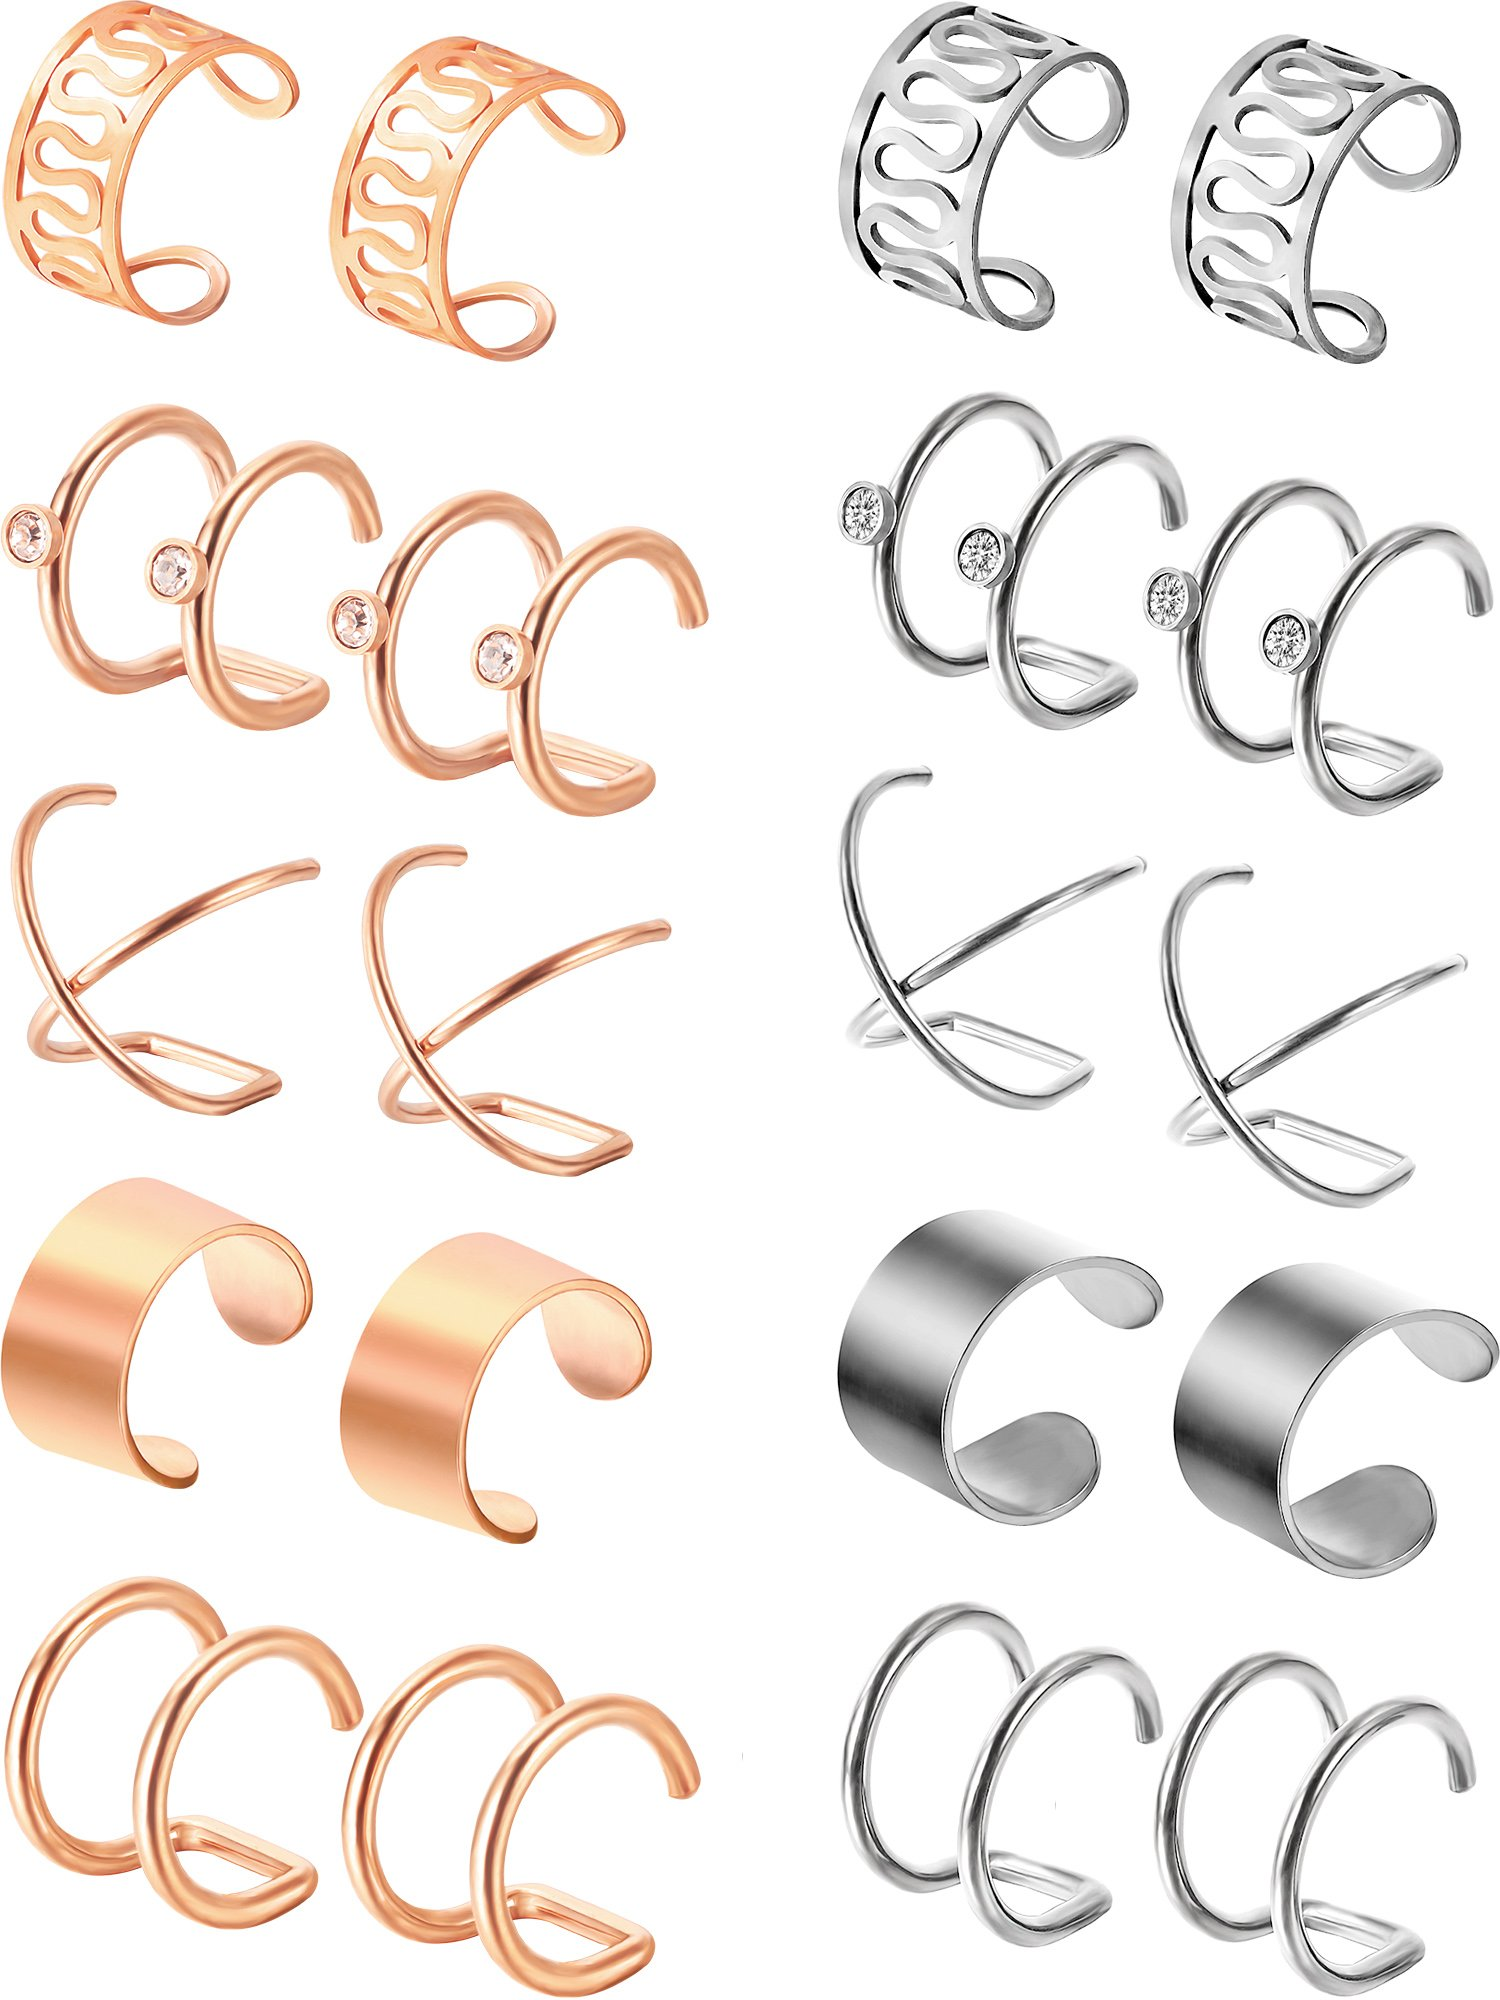 Jovitec 10 Pairs Stainless Steel Ear Cuff Helix Cartilage Clip on Earrings Non Piercing Cartilage Earrings for Women Girls Supplies, 5 Styles (Steel and Rose Gold) by Jovitec